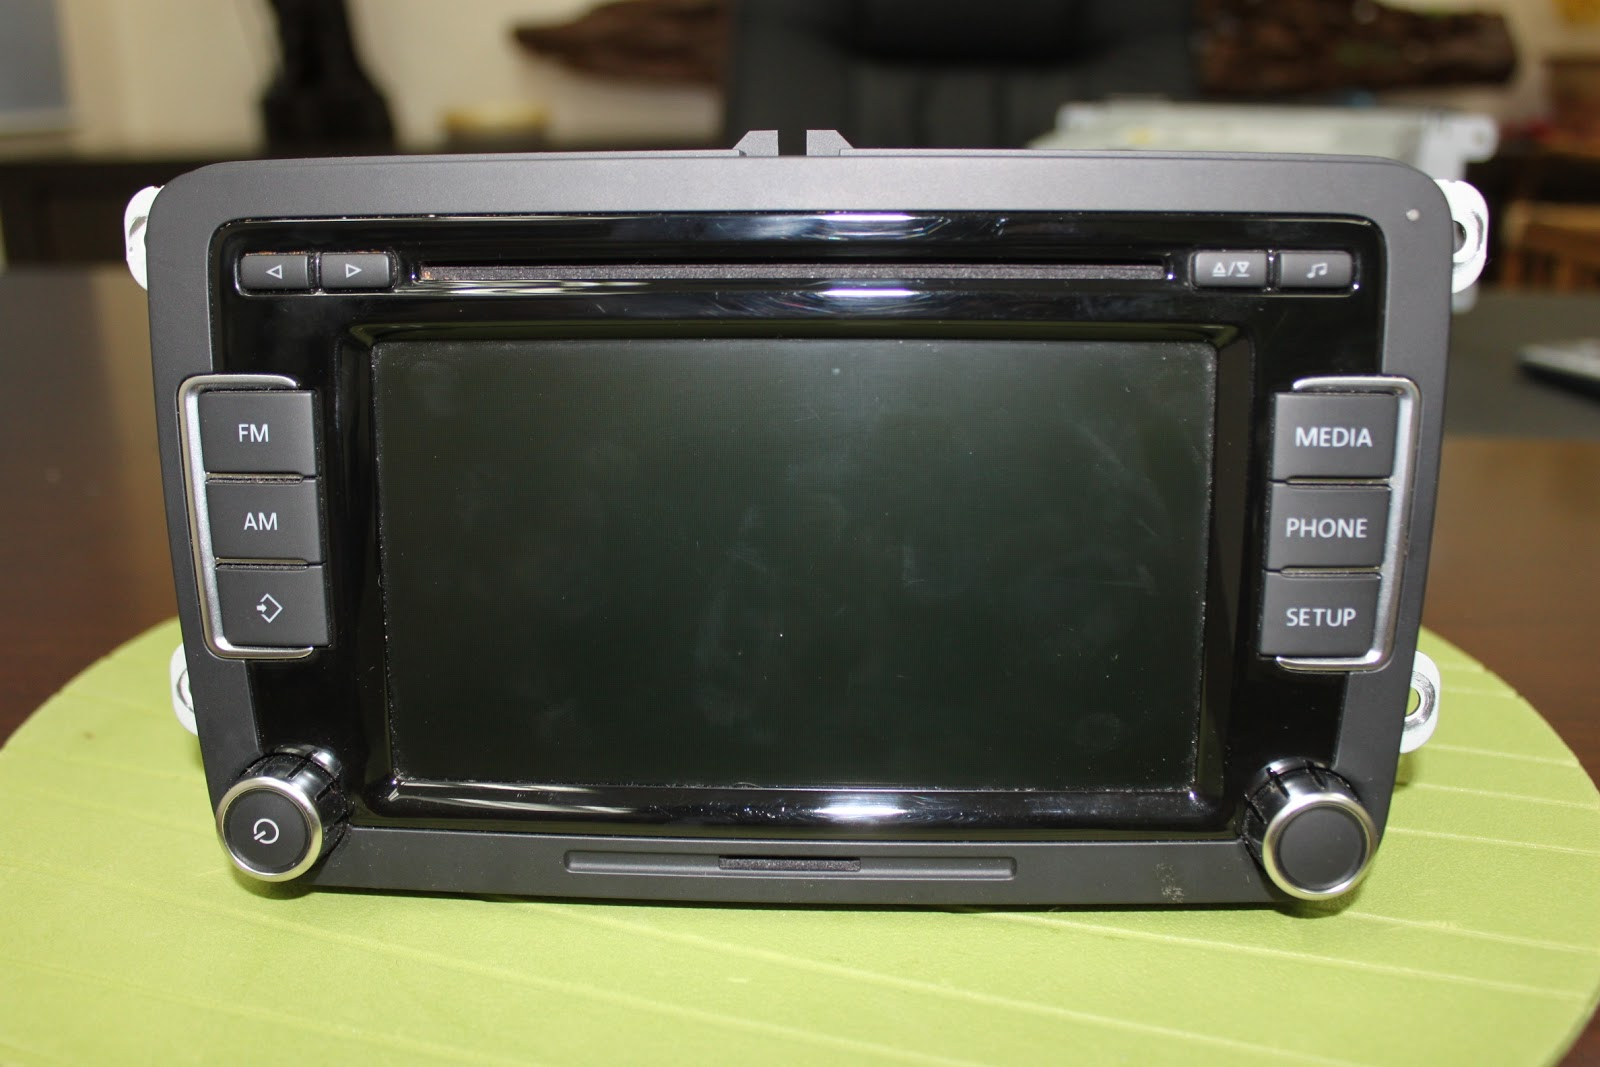 GENUINE VOLKSWAGEN MP3 CD RADIO RCD510 RADIO (PREMIUM) | VW Merchandise